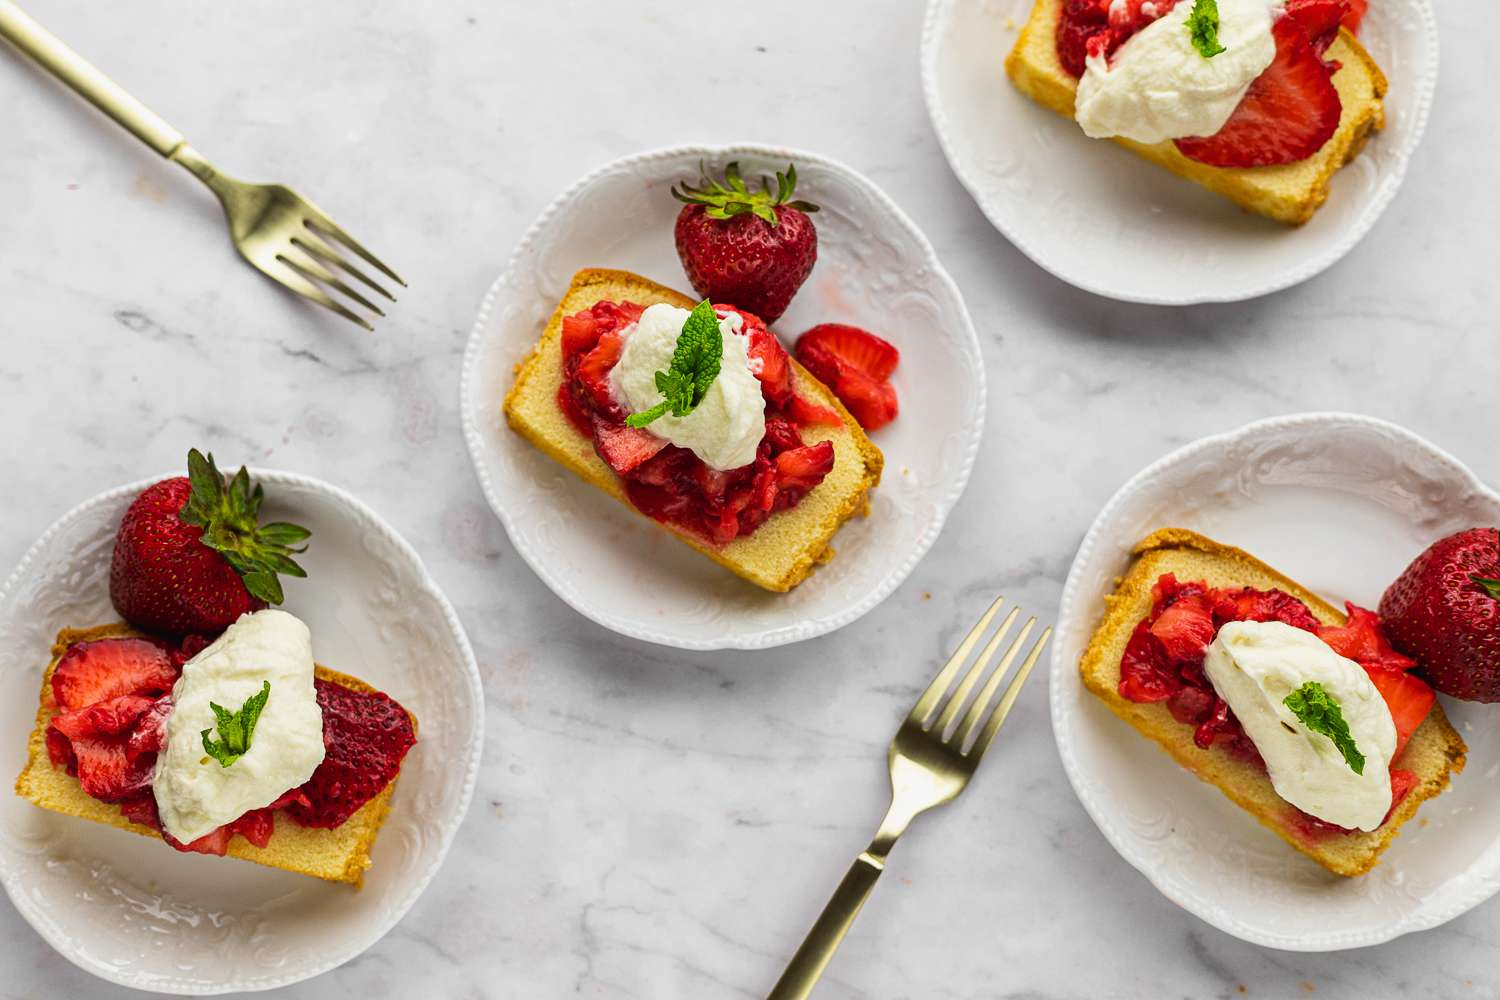 Strawberry Shortcake Made With Pound Cake, garnished with mint